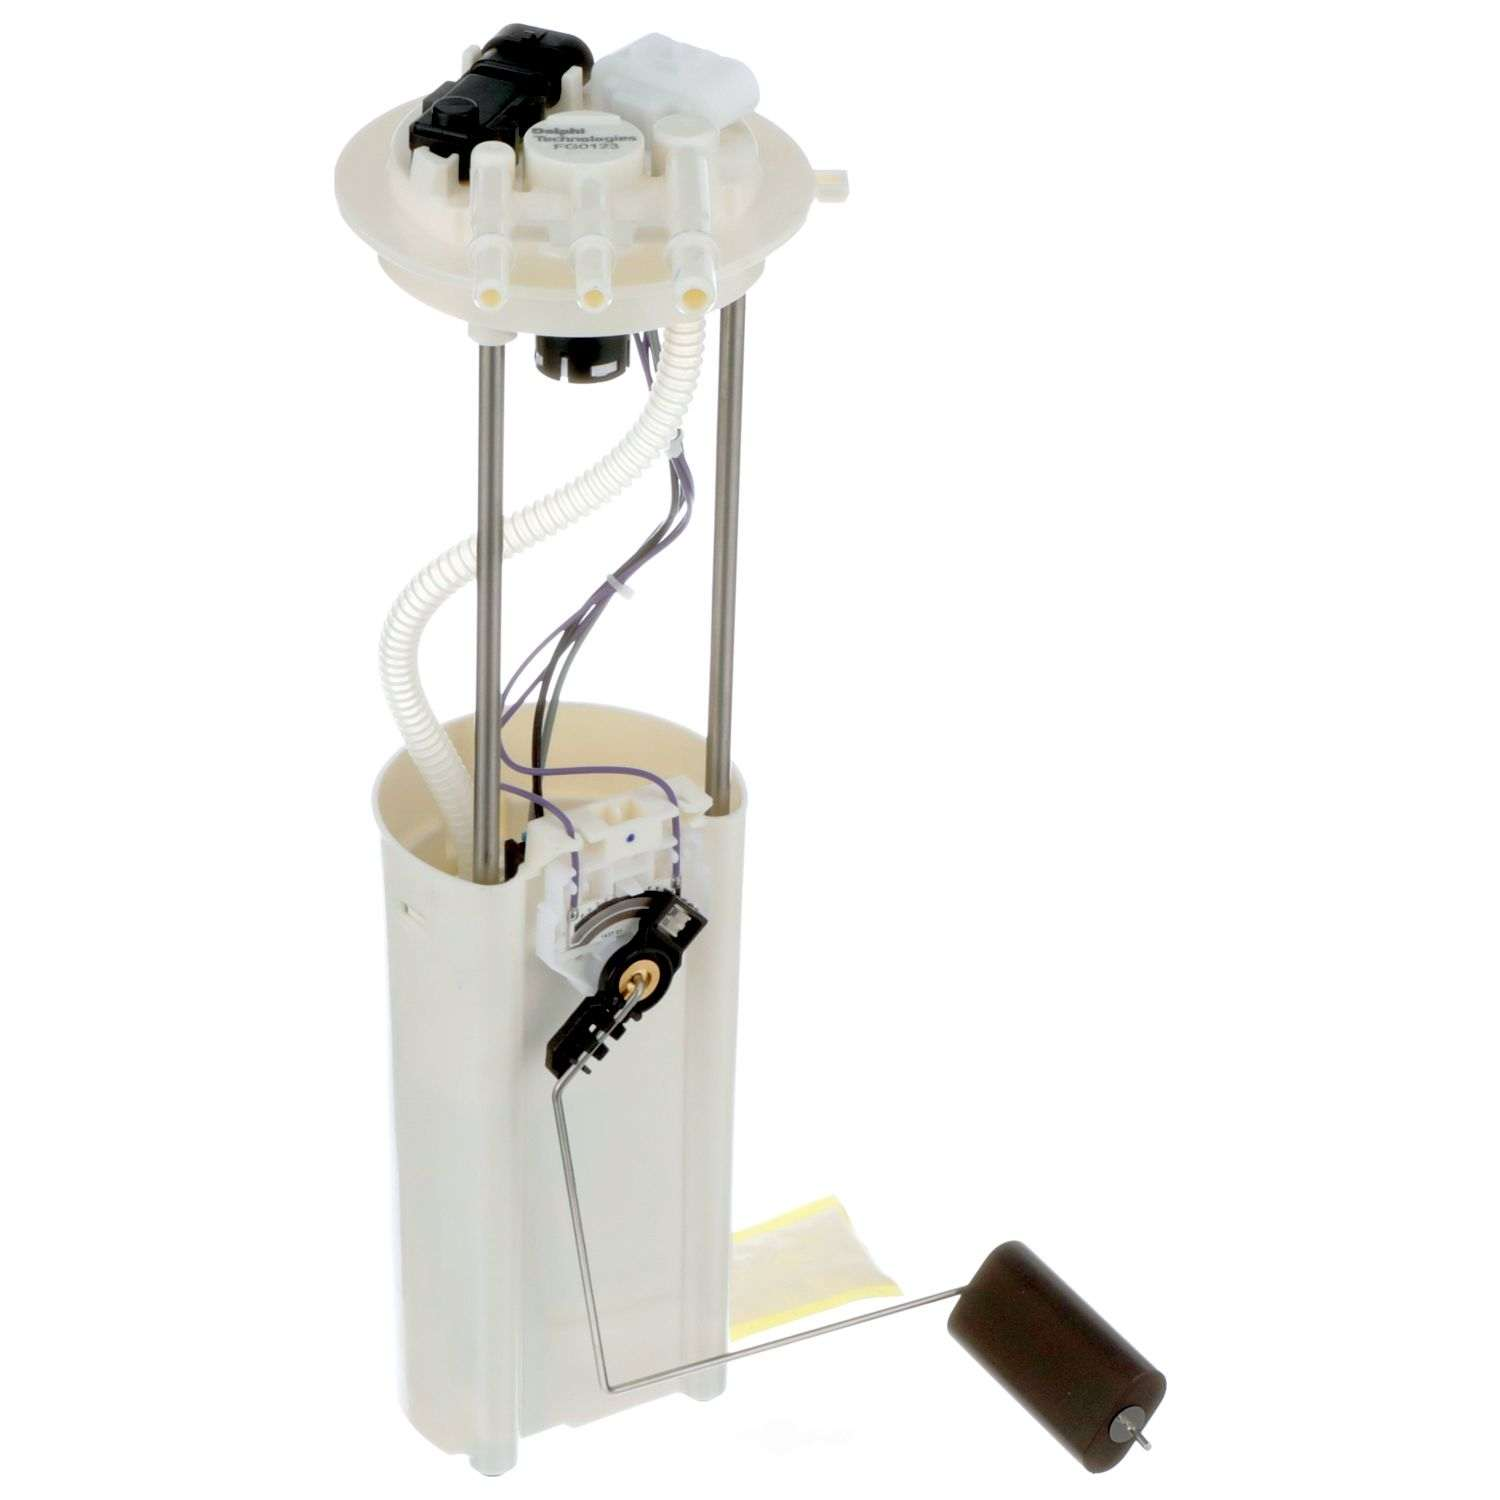 DELPHI - Fuel Pump Module Assembly - DPH FG0123